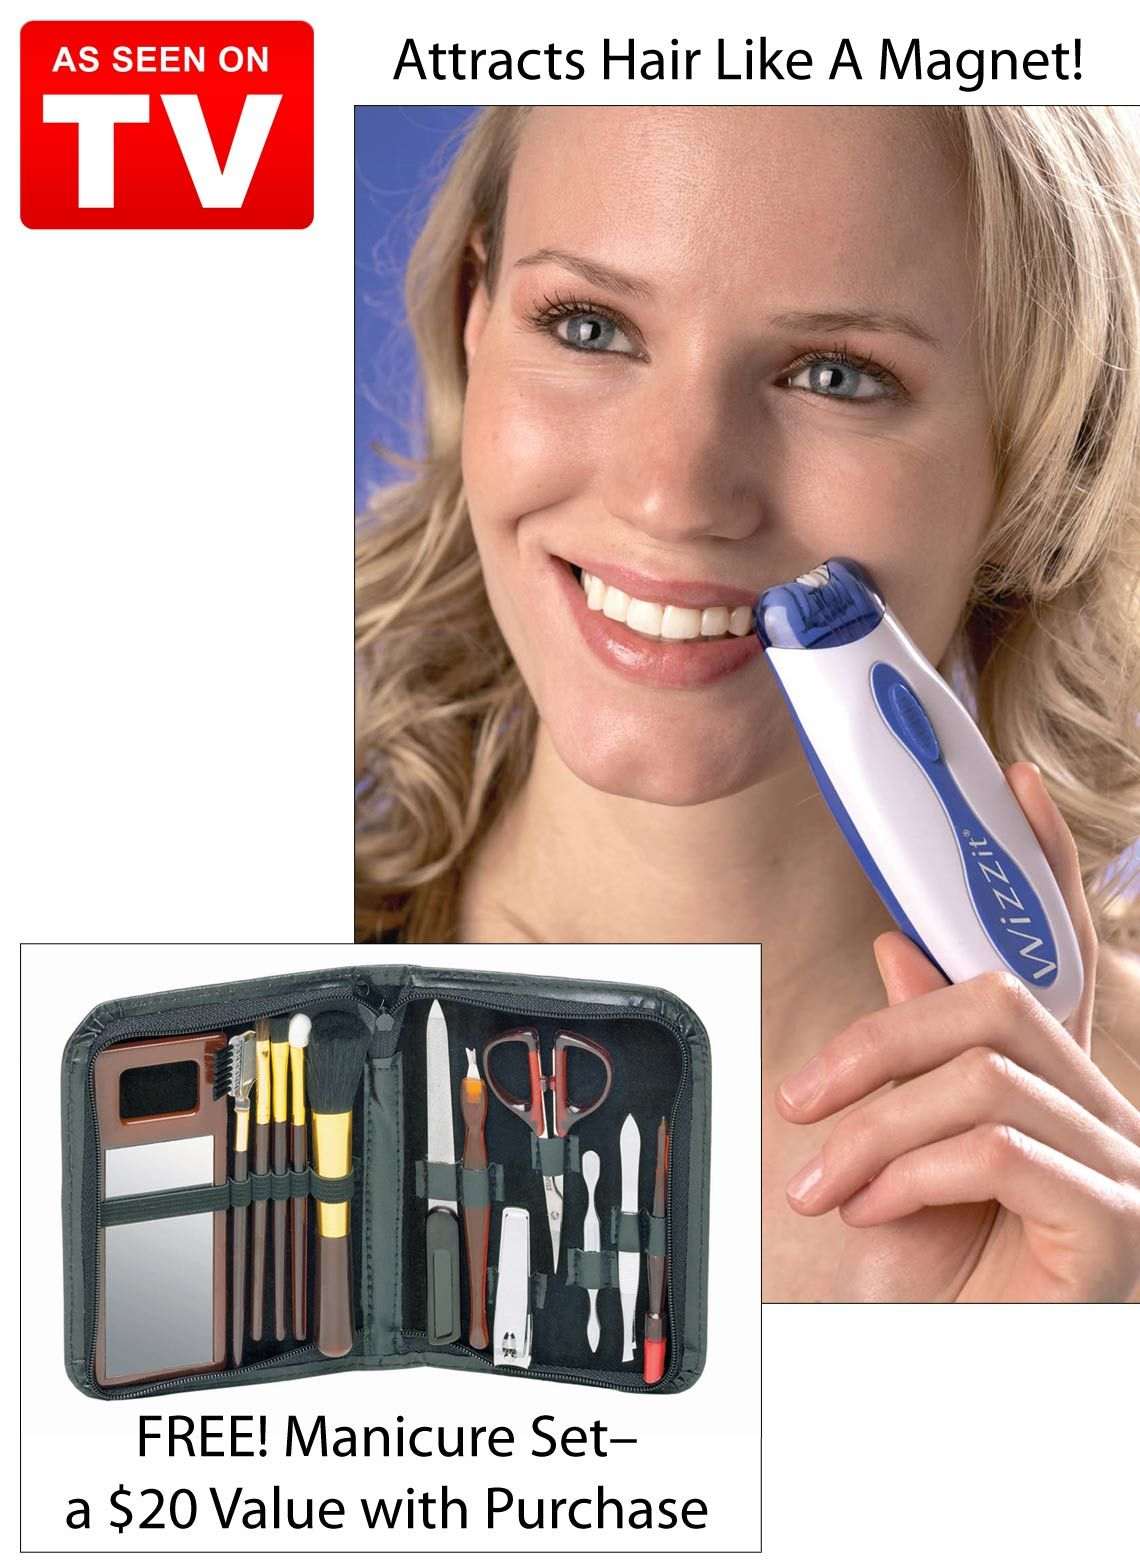 Wizzit Hair Remover Unwanted hair, Hair removal, Hair